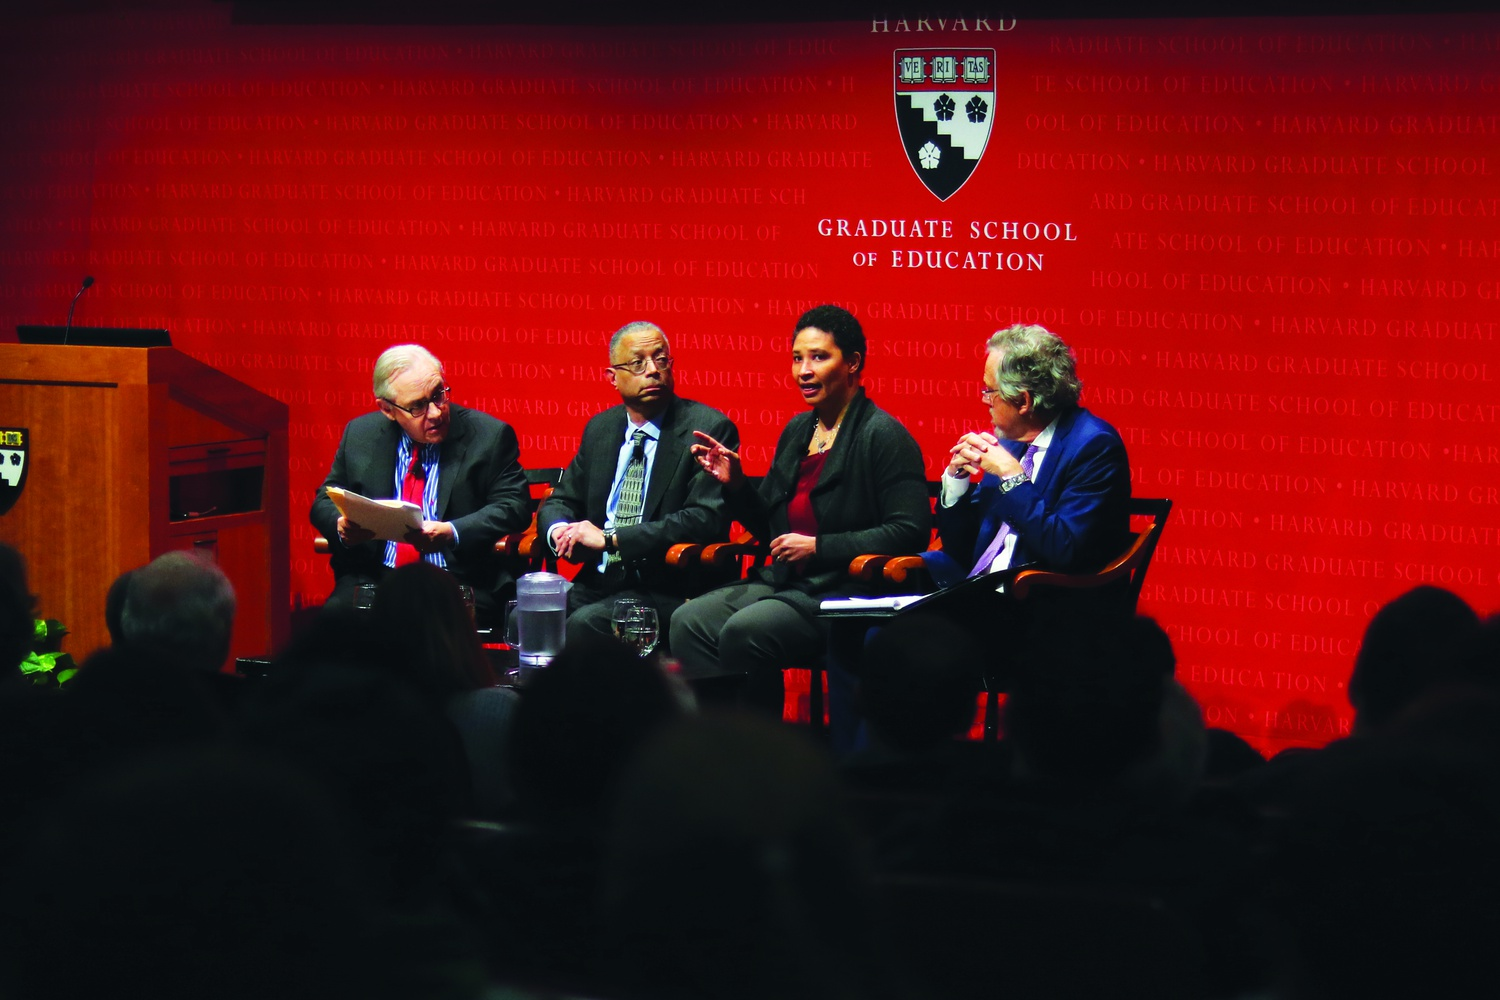 Danielle S. Allen remarked on ways to improve social inequality through a focus on civic education Wednesday evening during a Harvard Graduate School of Education's Askwith Forum event. The panel was a conversation about poverty, inequality, and racial injustice in the U.S.